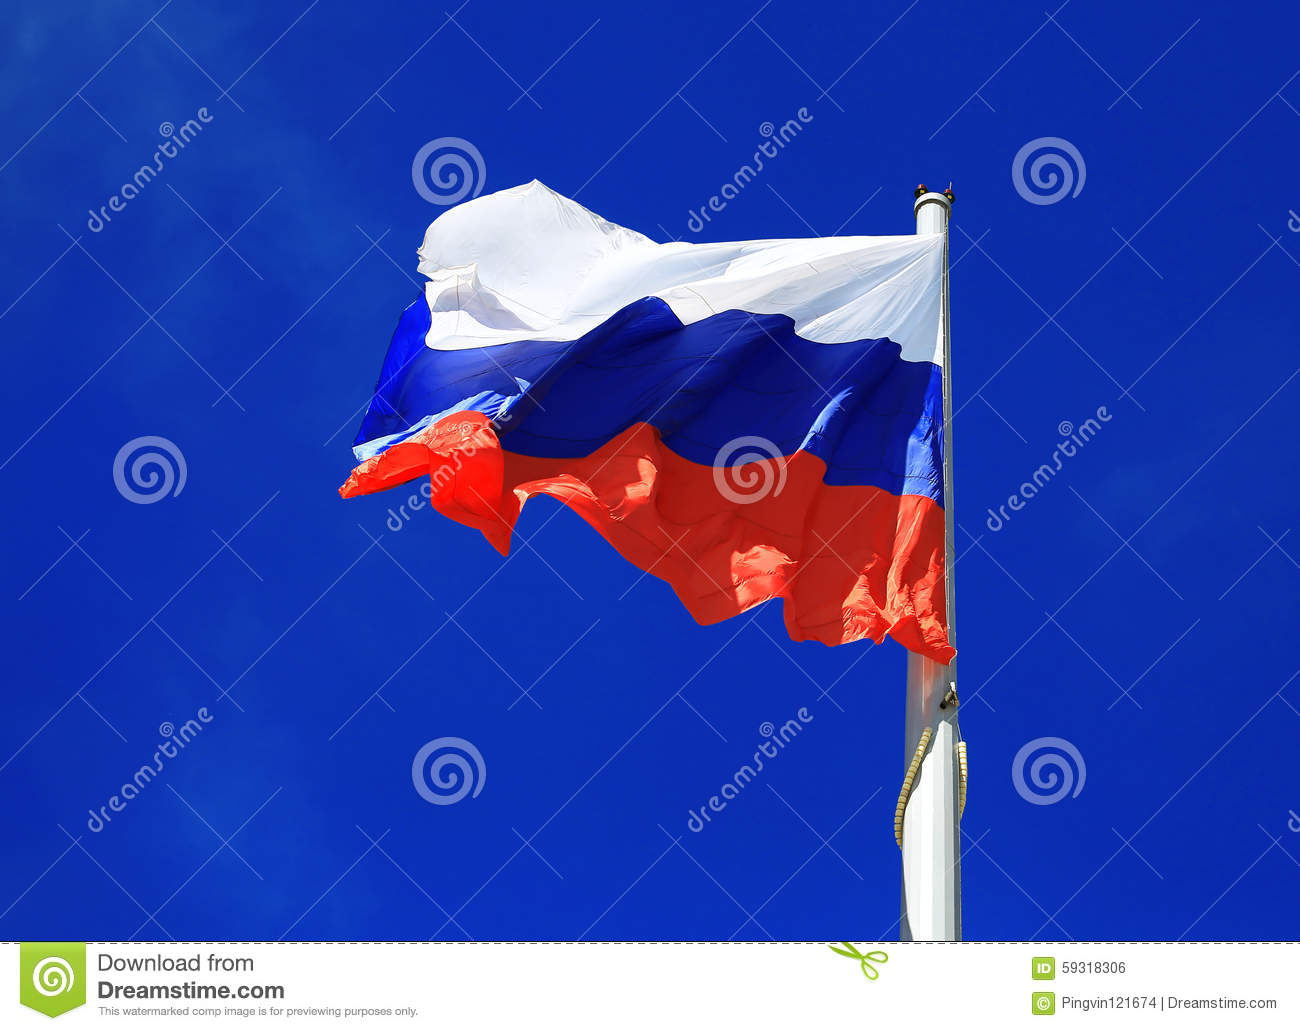 Official symbols of the state: what is the anthem of the Russian Federation